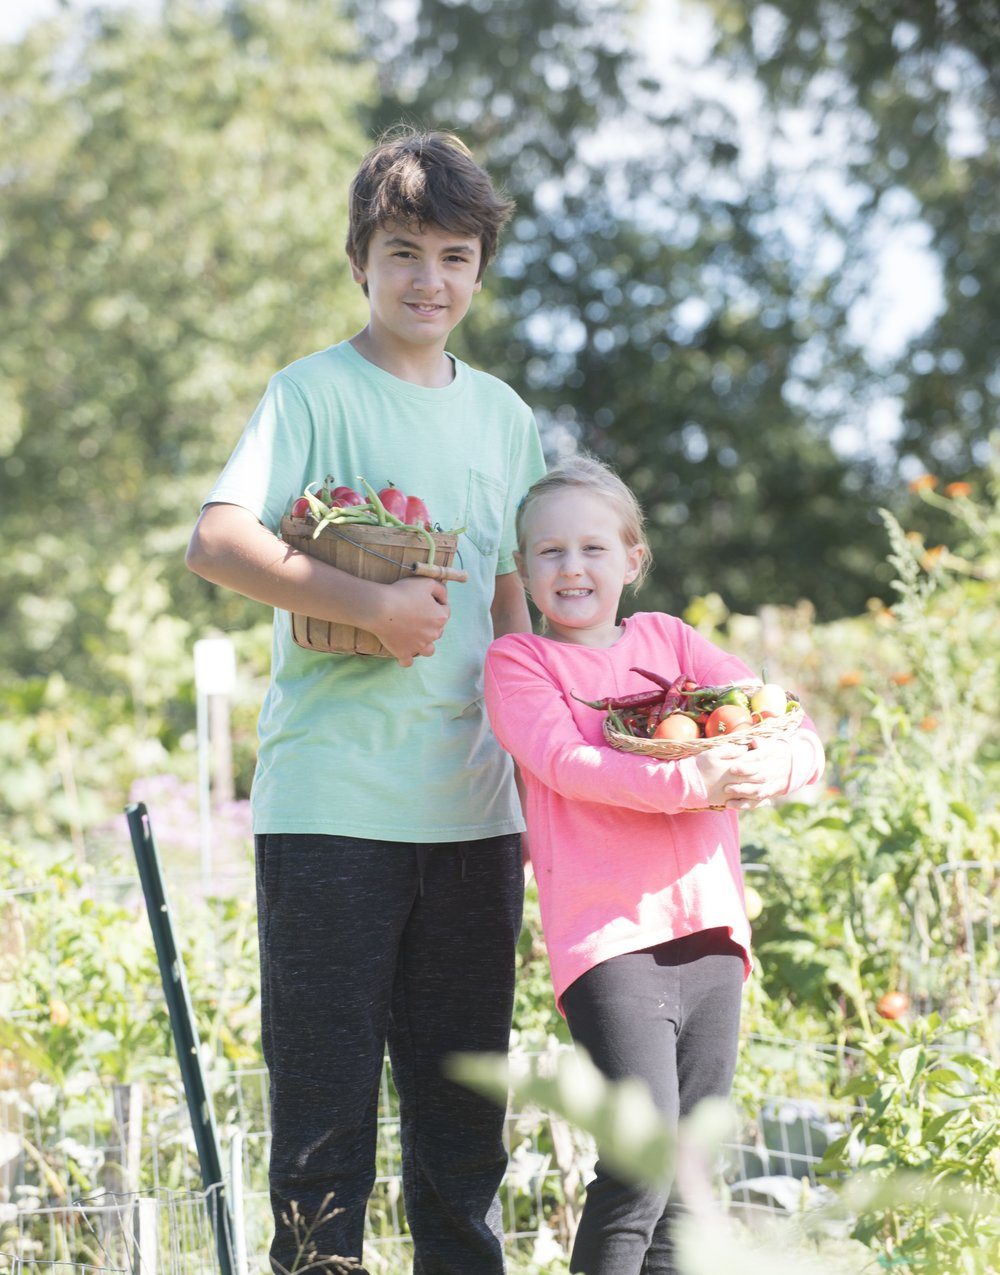 Girl and boy in garden with vegetable baskets.jpg